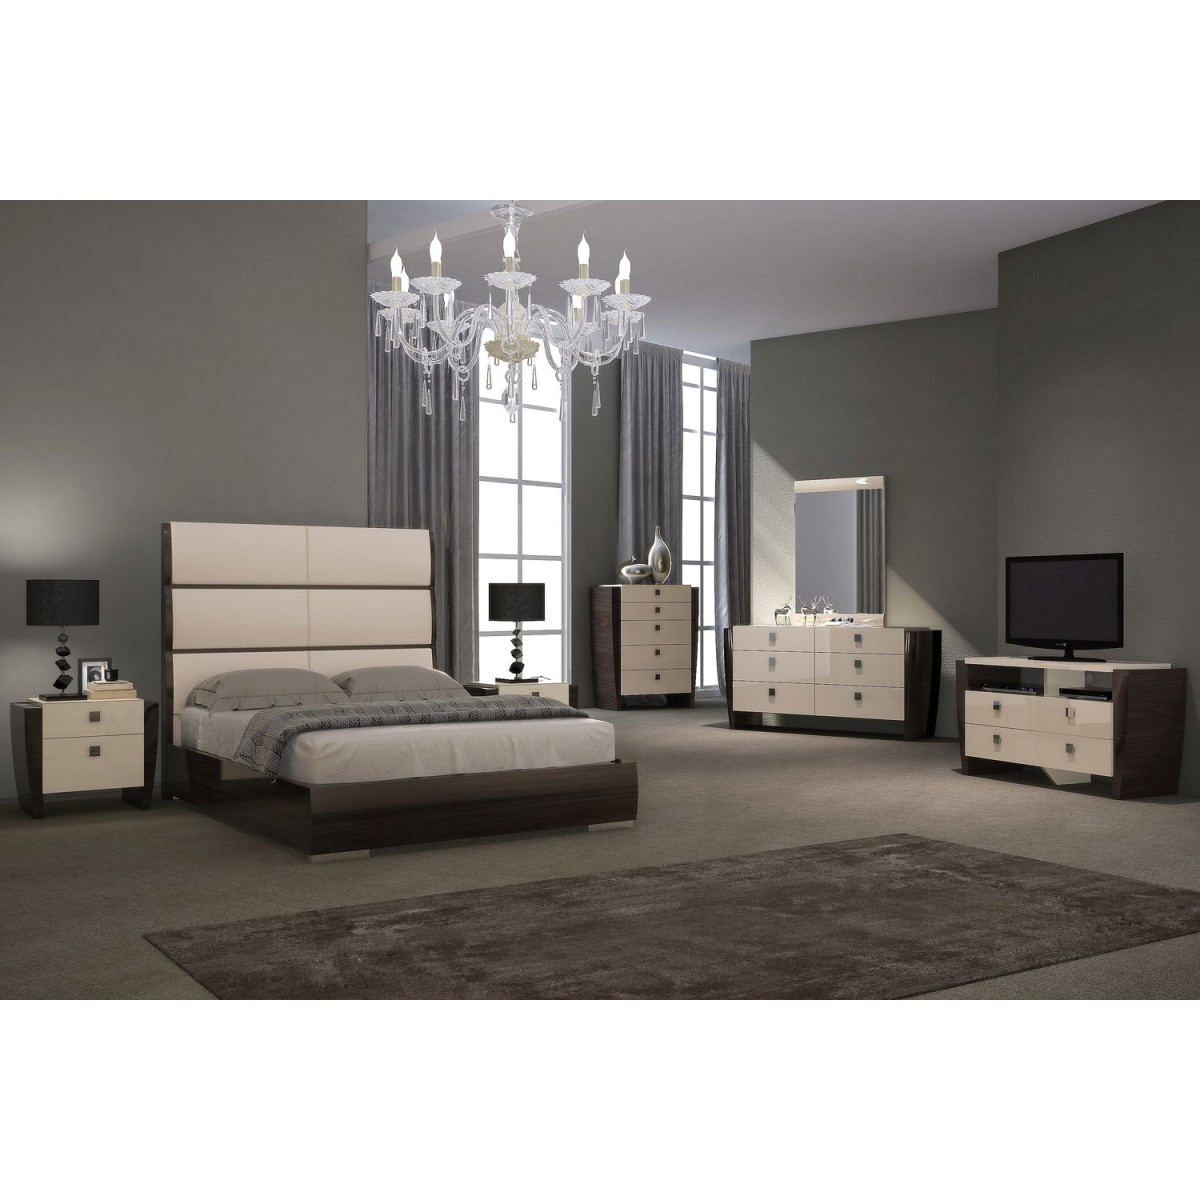 Bedroom Sets Nyc york bedroom set collection